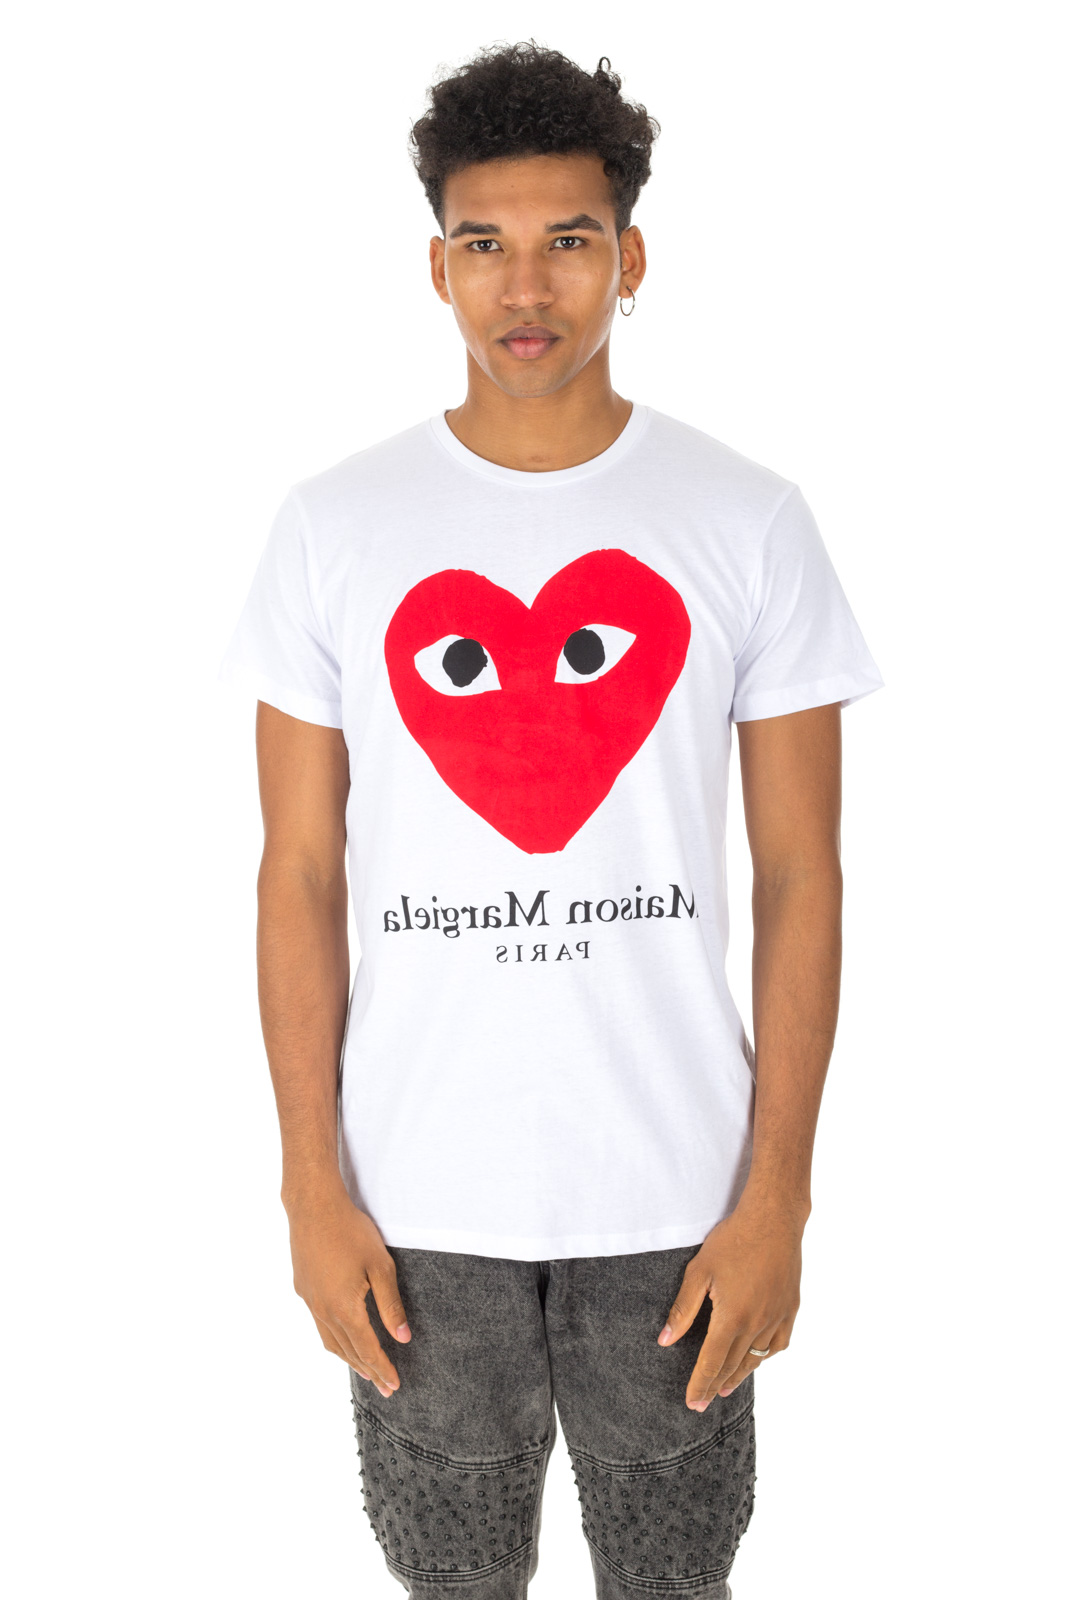 Faking - Comme des Garcons T shirt and Maison Margiela Unisex White